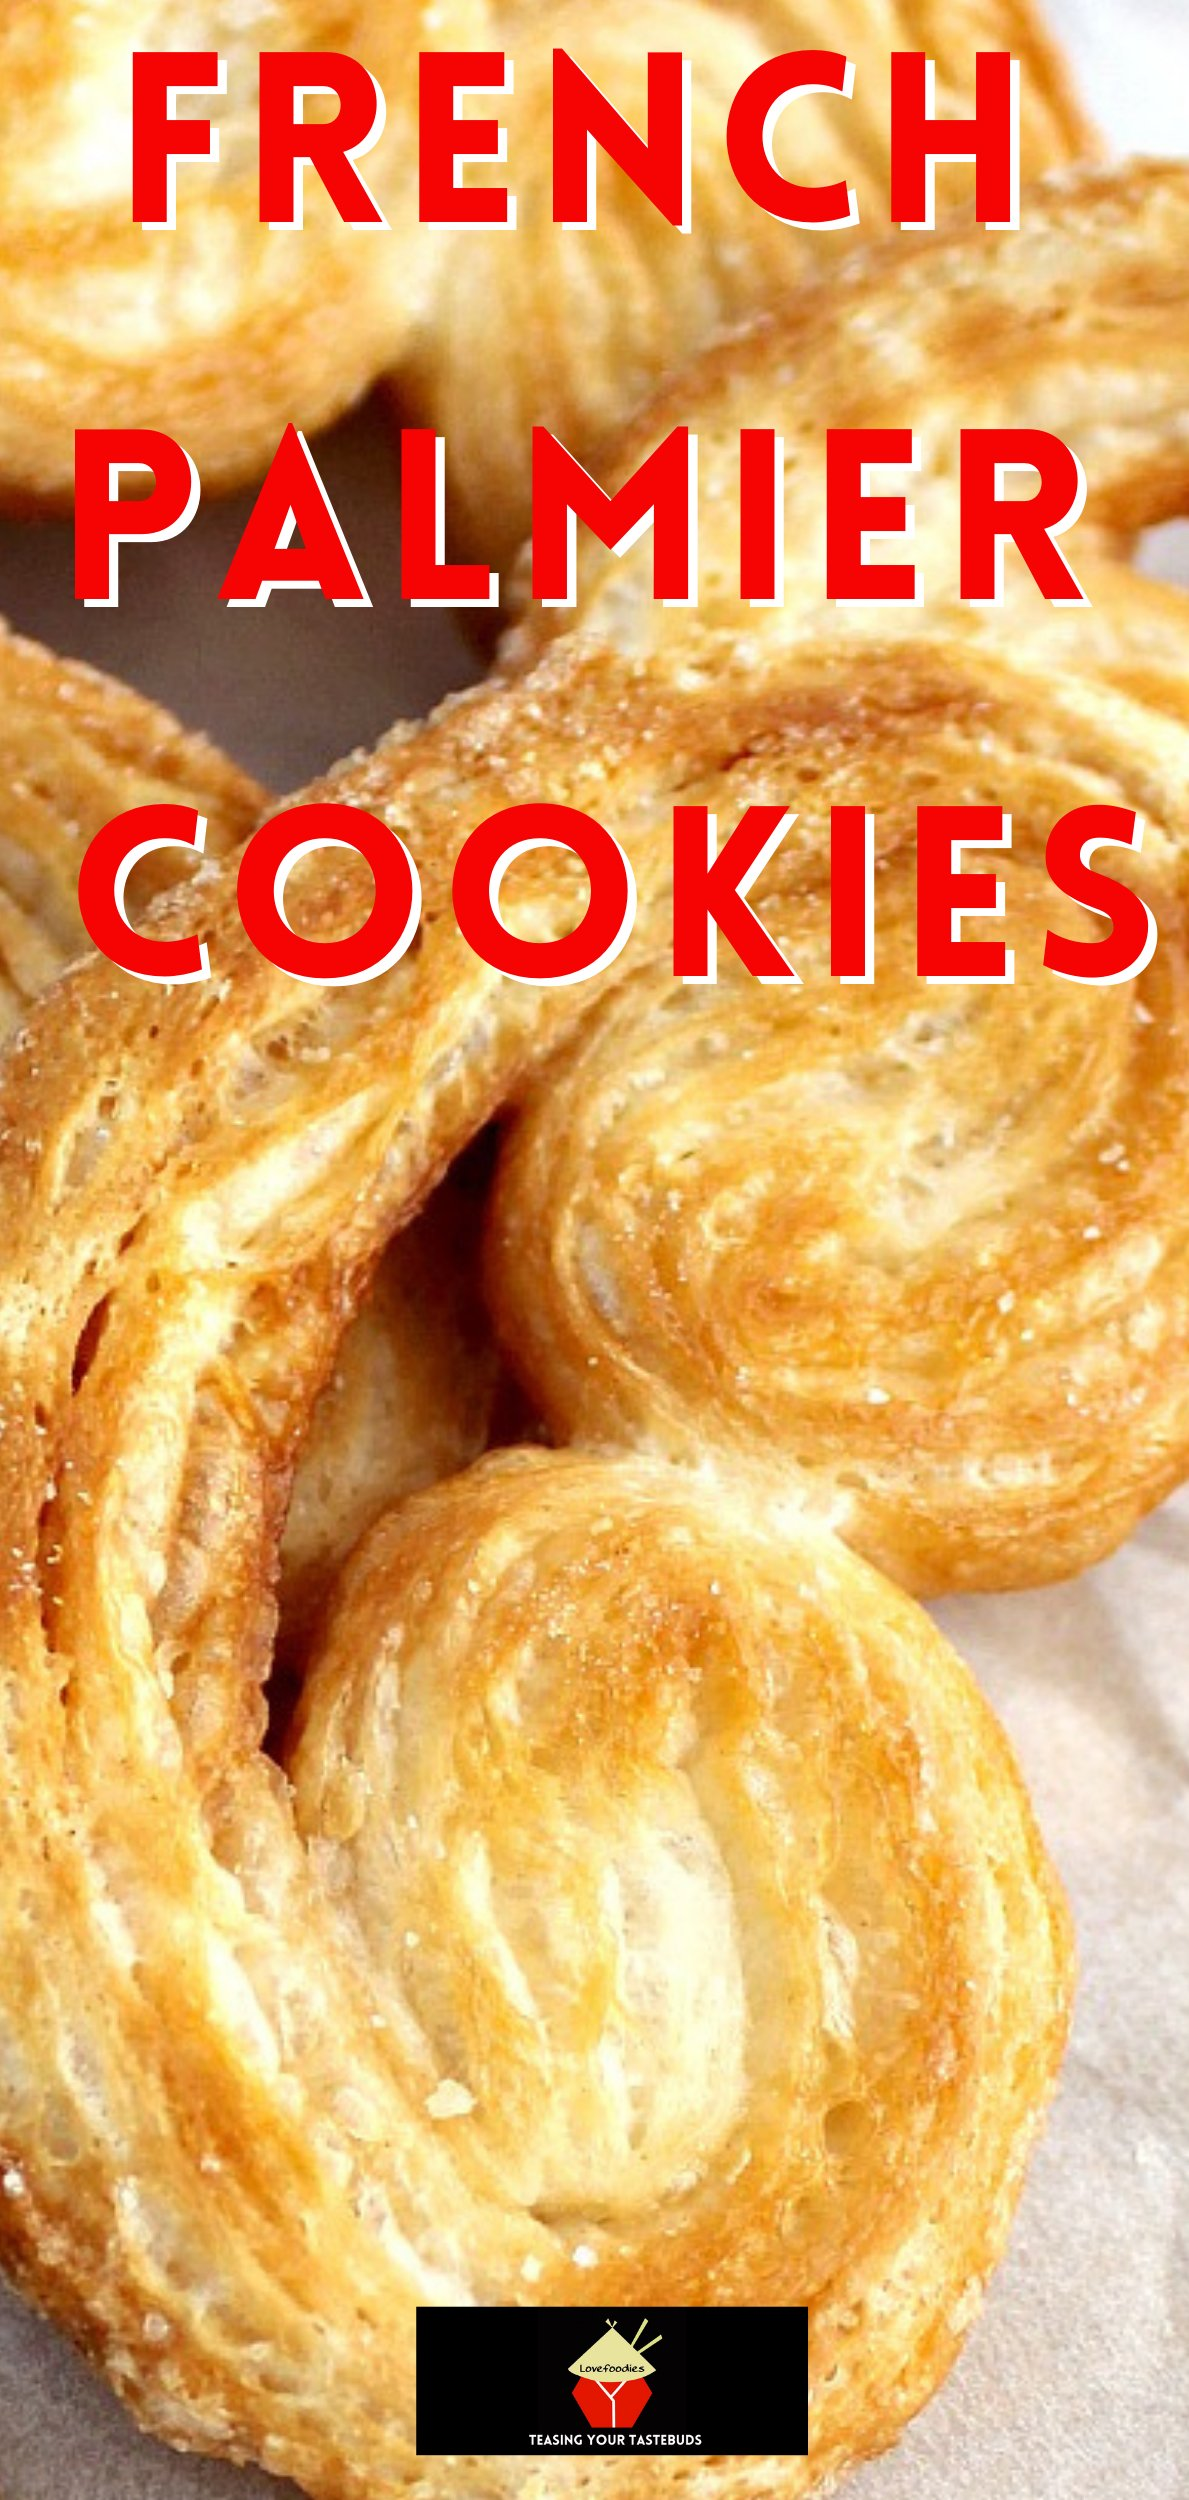 French Palmier CookiesP2